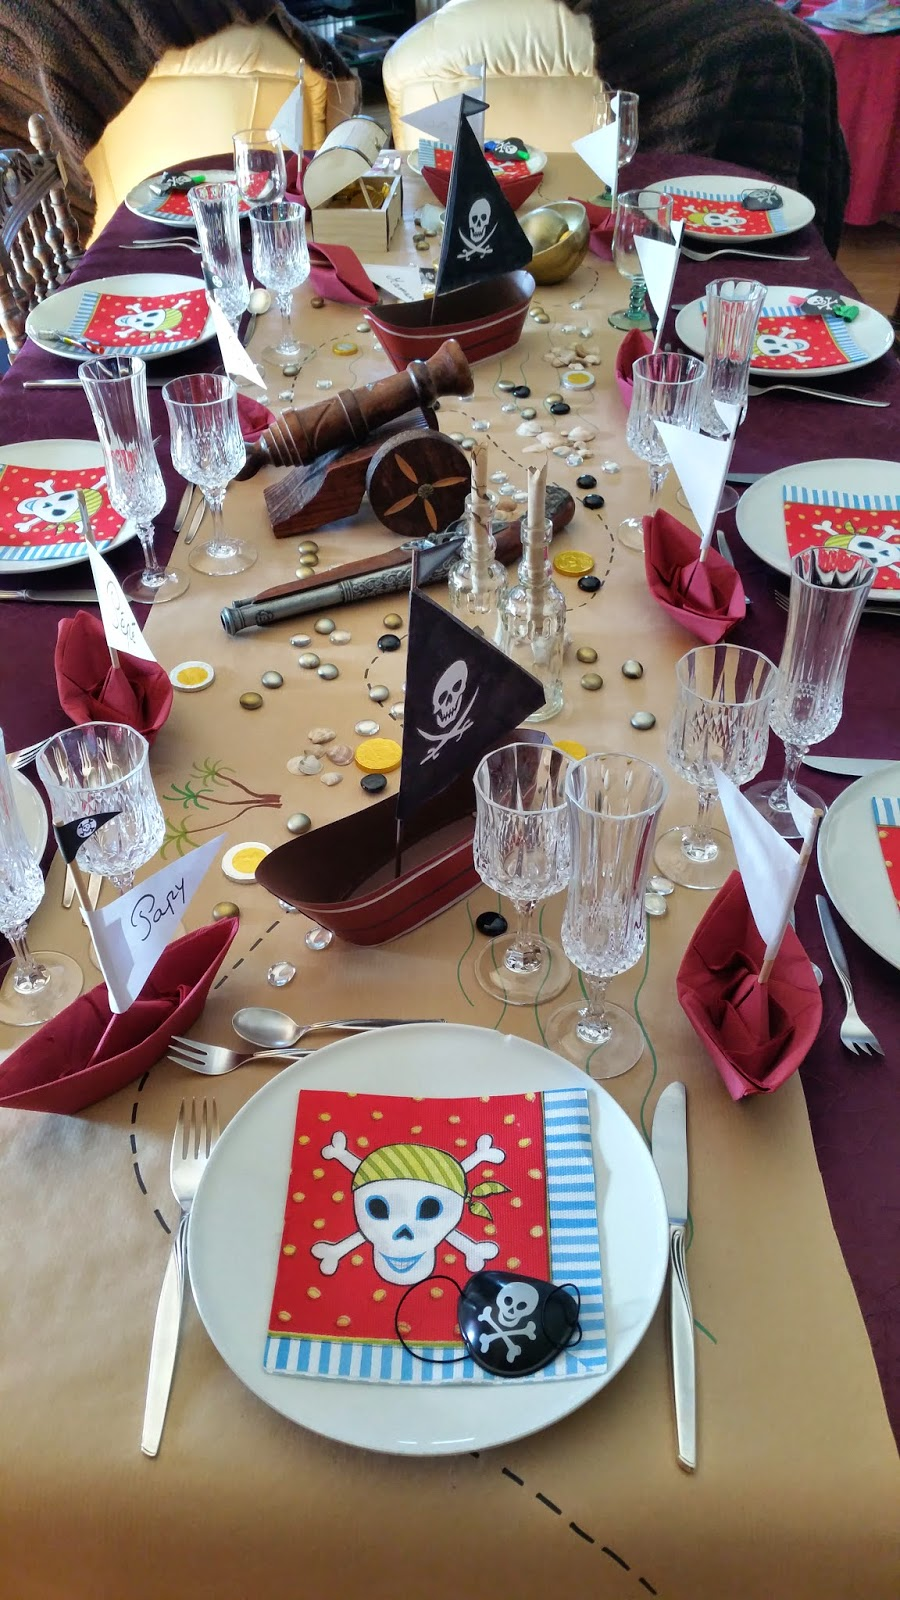 aujourd 39 hui j 39 ai un anniversaire pirate pirate birthday party. Black Bedroom Furniture Sets. Home Design Ideas